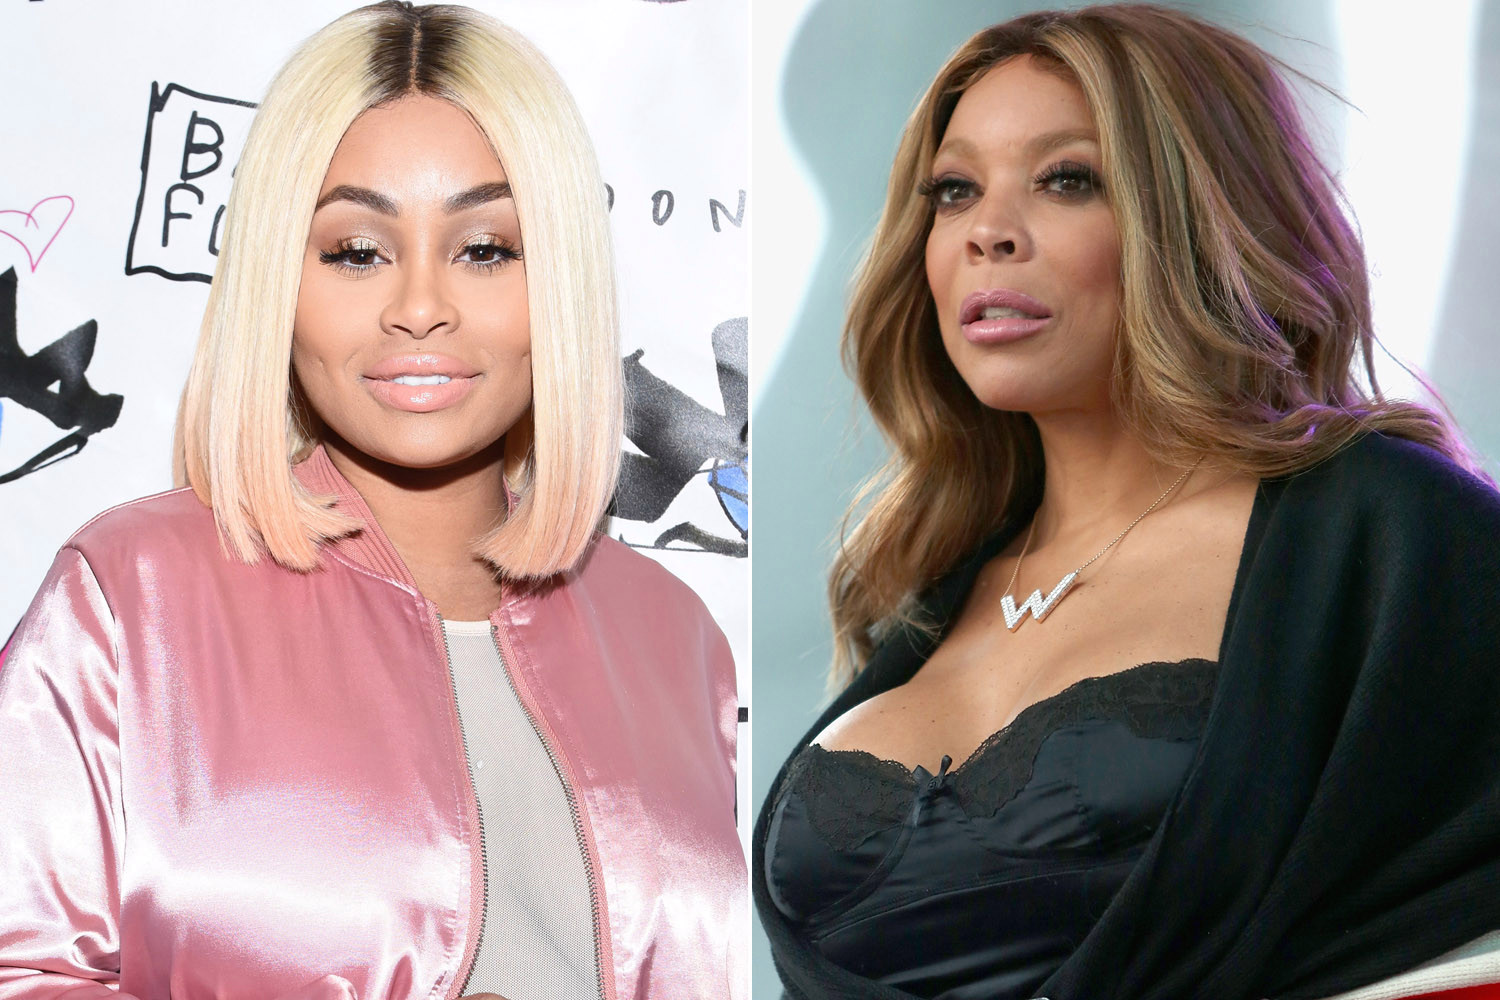 Blac Chyna dishes: Could there be a reconciliation with Rob Kardashian?